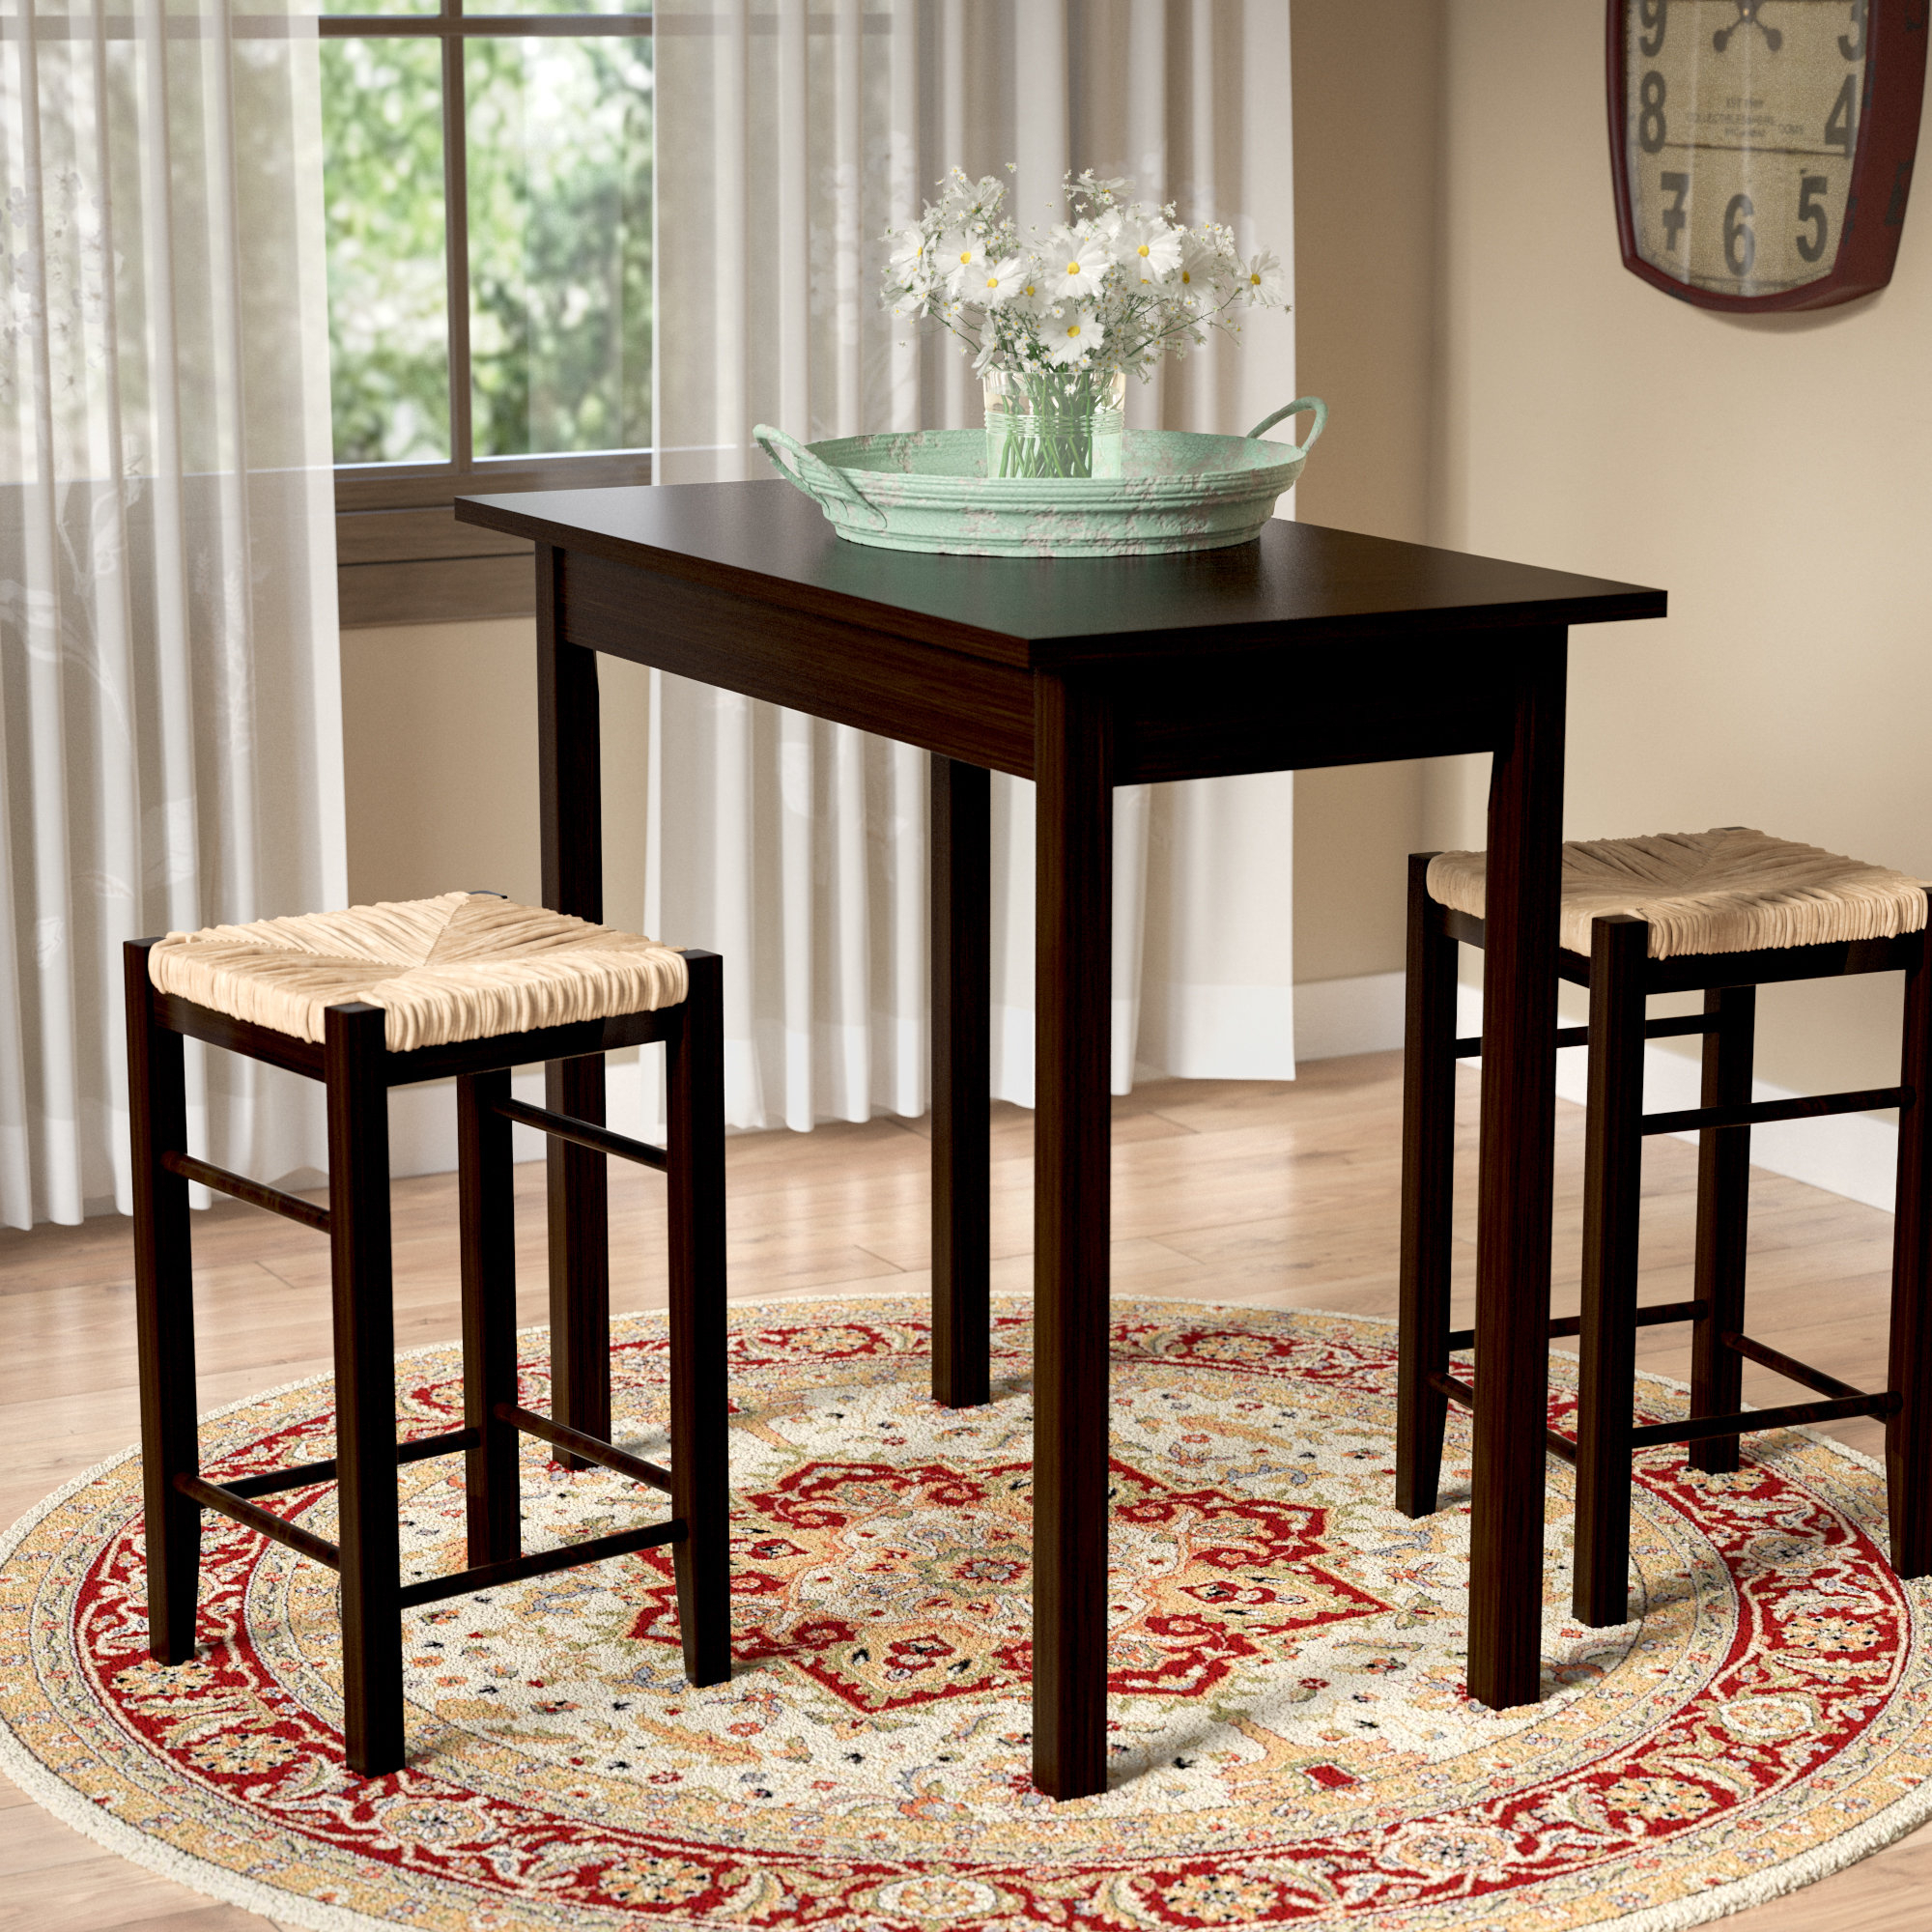 August Grove Tenney 3 Piece Counter Height Dining Set & Reviews For Most Popular Kinsler 3 Piece Bistro Sets (View 13 of 20)